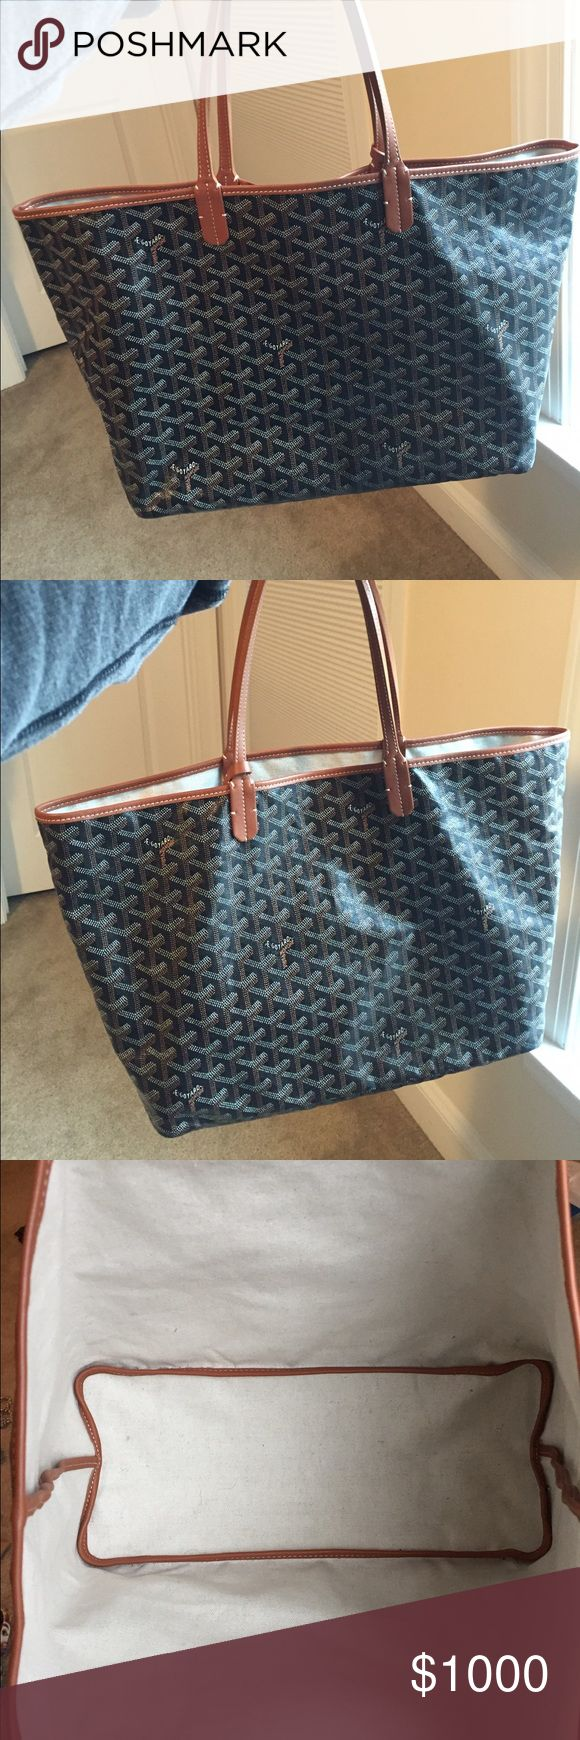 """GOYARD St Louis Tote PM 11""""W x 19""""H x 6""""D. Only sign of wear is slight cracking on strap. No stains, scratches or anything. Original dustbag and cards included. Price is very, very firm. Goyard Bags Totes"""